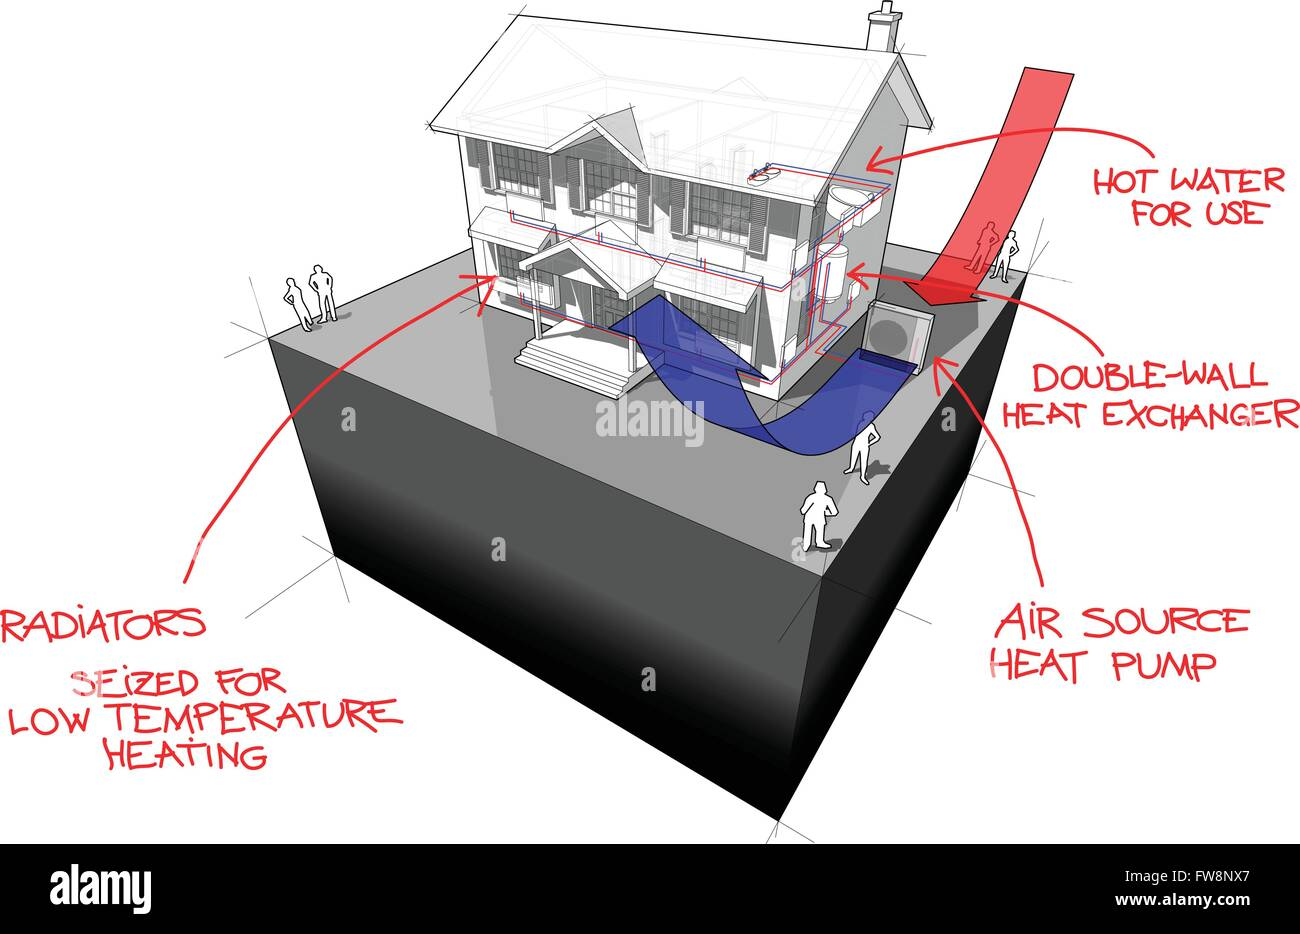 hight resolution of air source heat pump with radiators and solar panels diagram and hand drawn notes house diagram